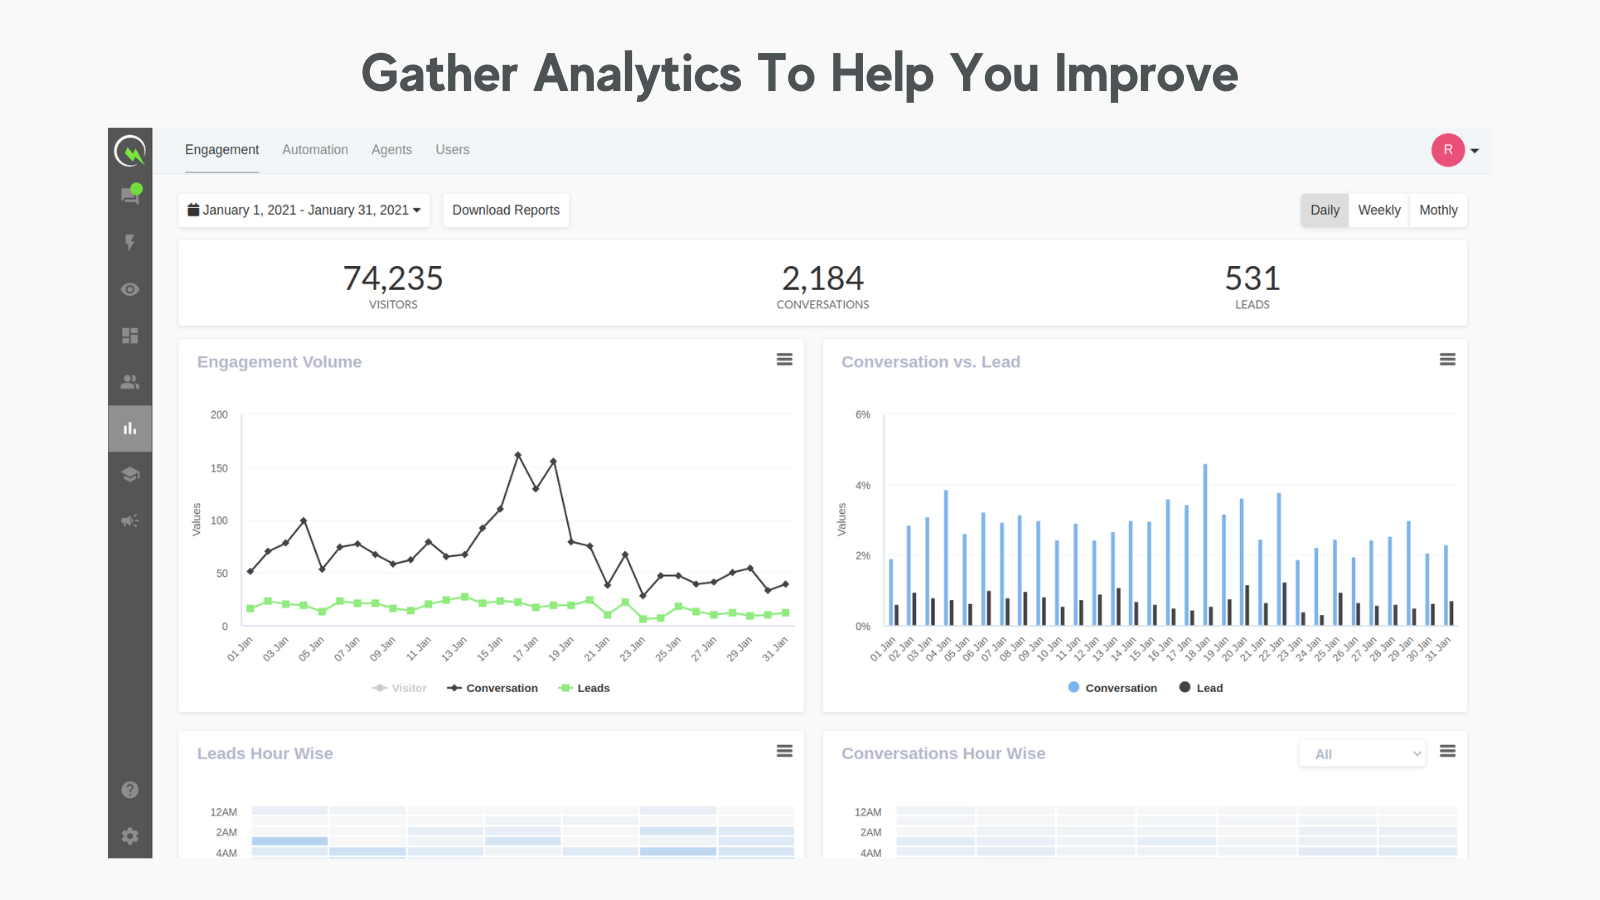 Detailed Analytics To Help You Grow